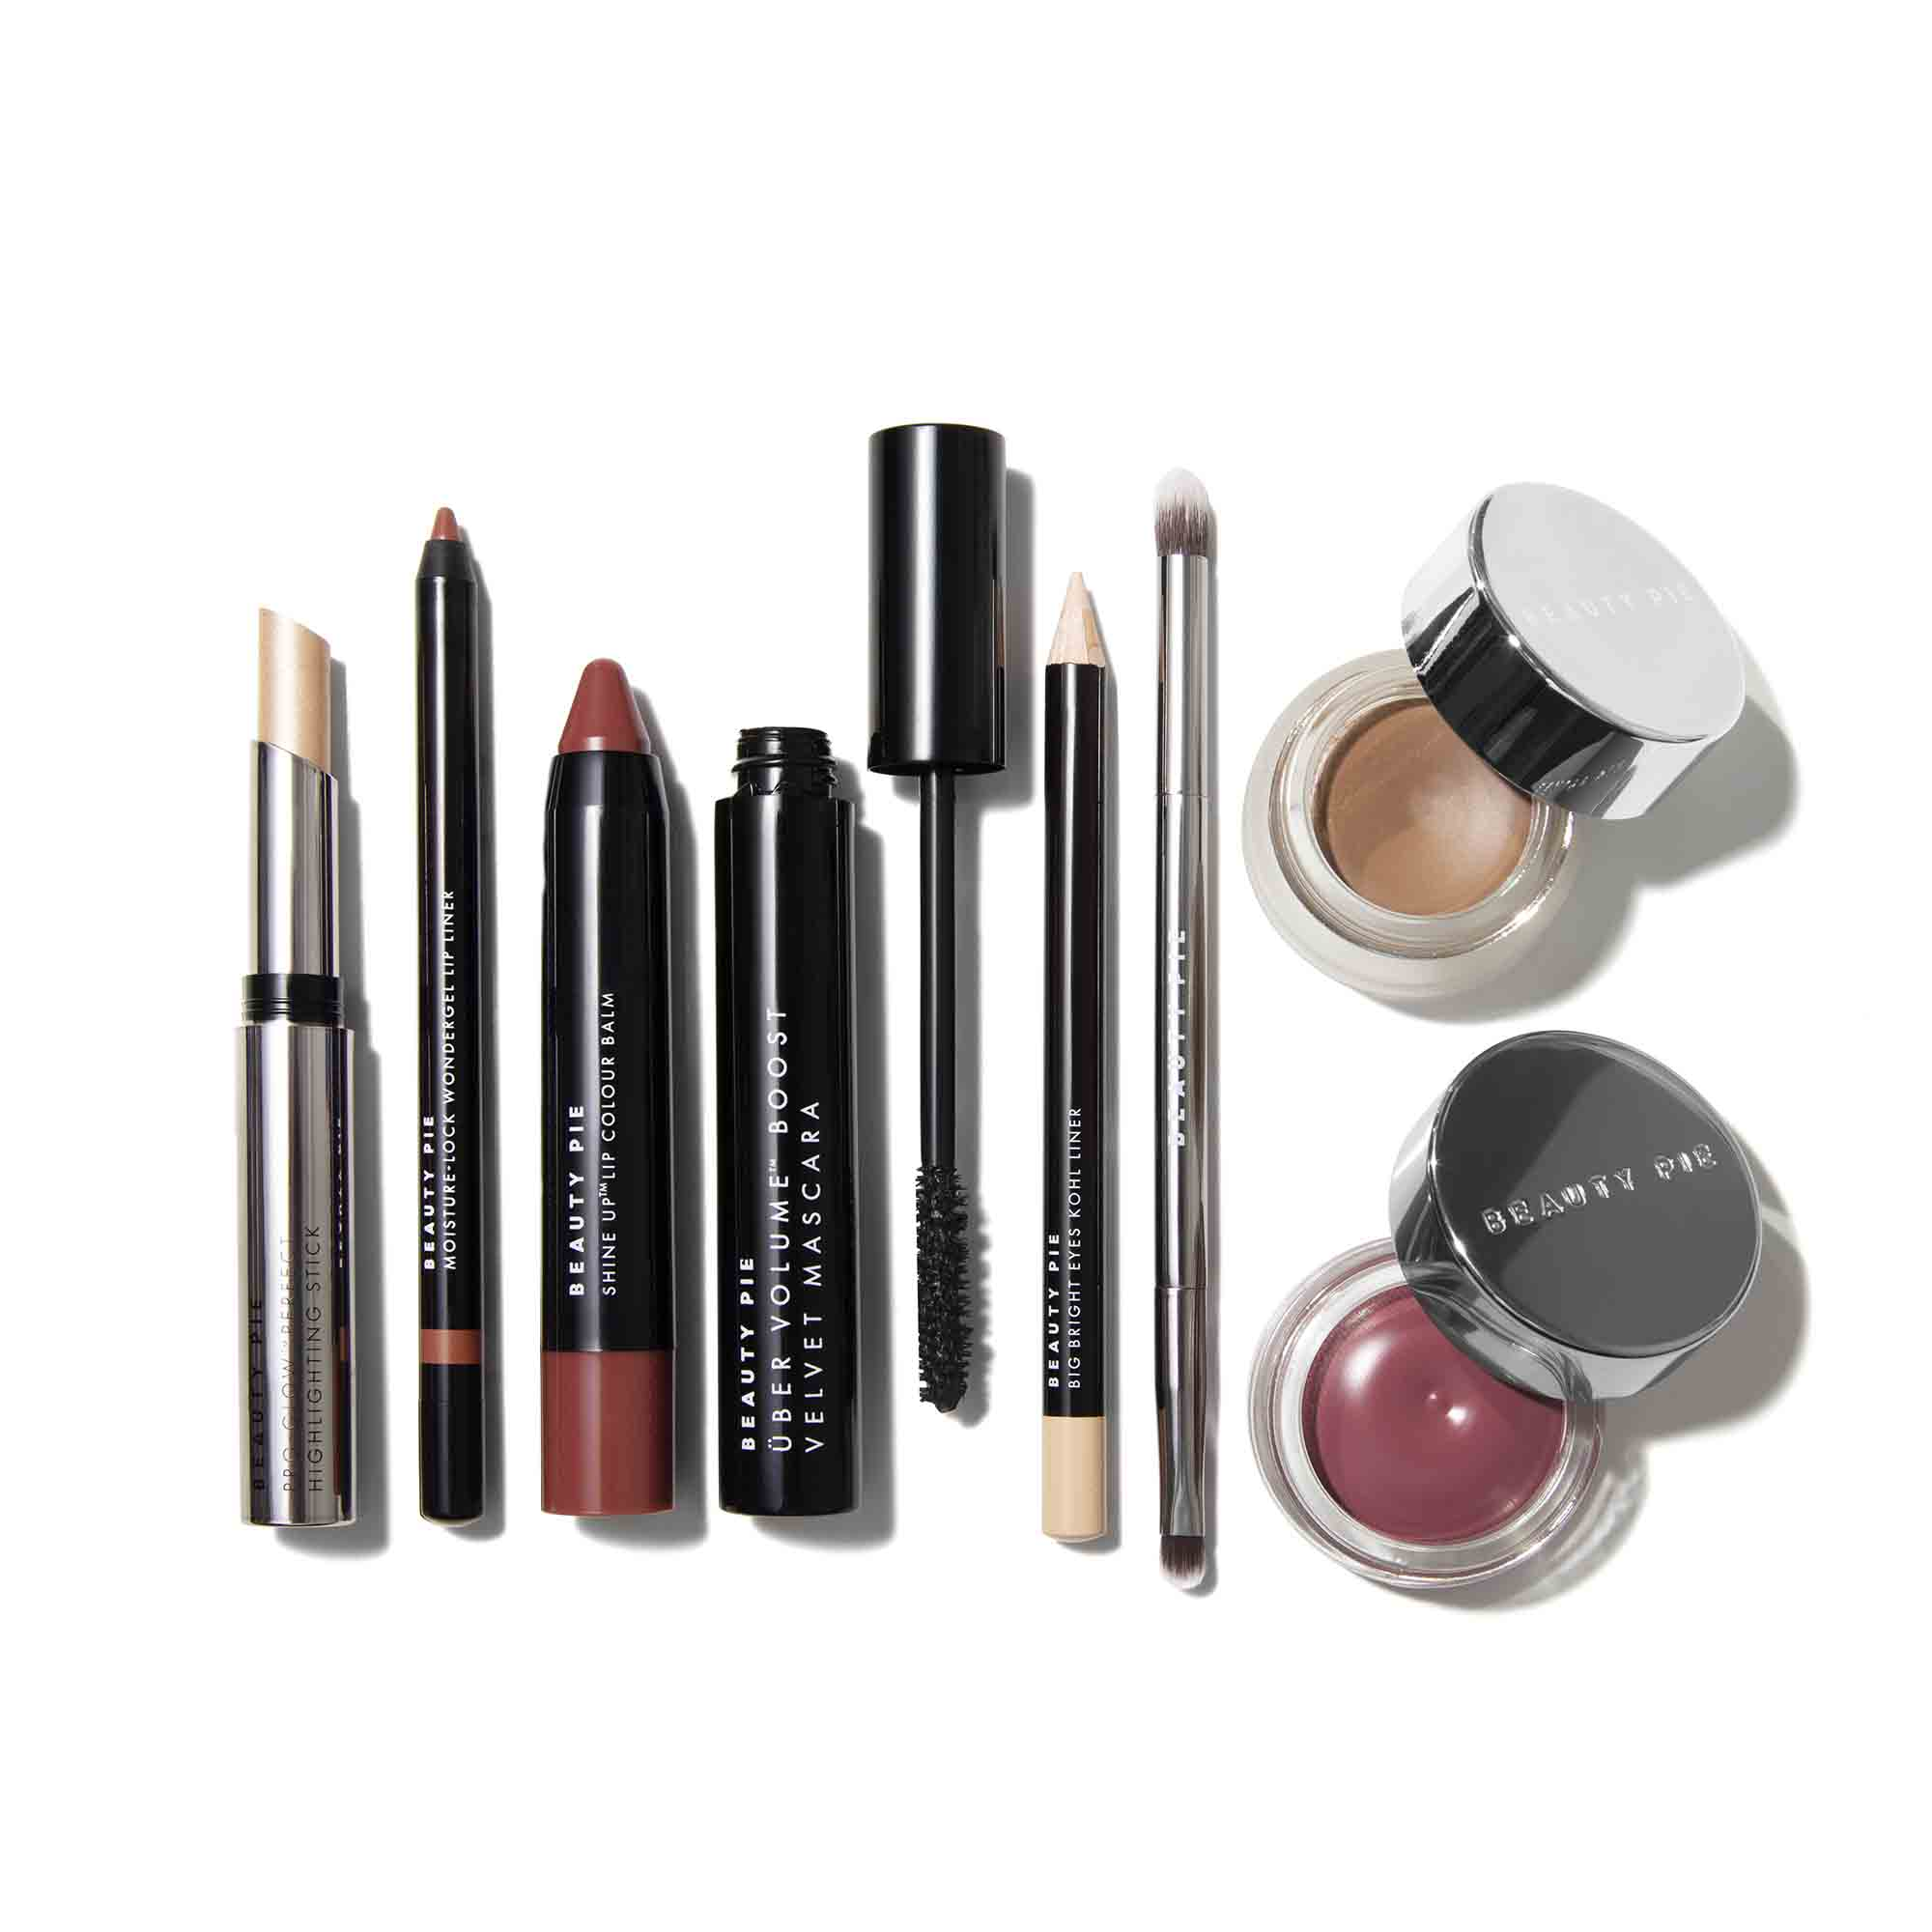 Image for Limited Edition: Pati Dubroff Makeup Essentials from BeautyPie UK